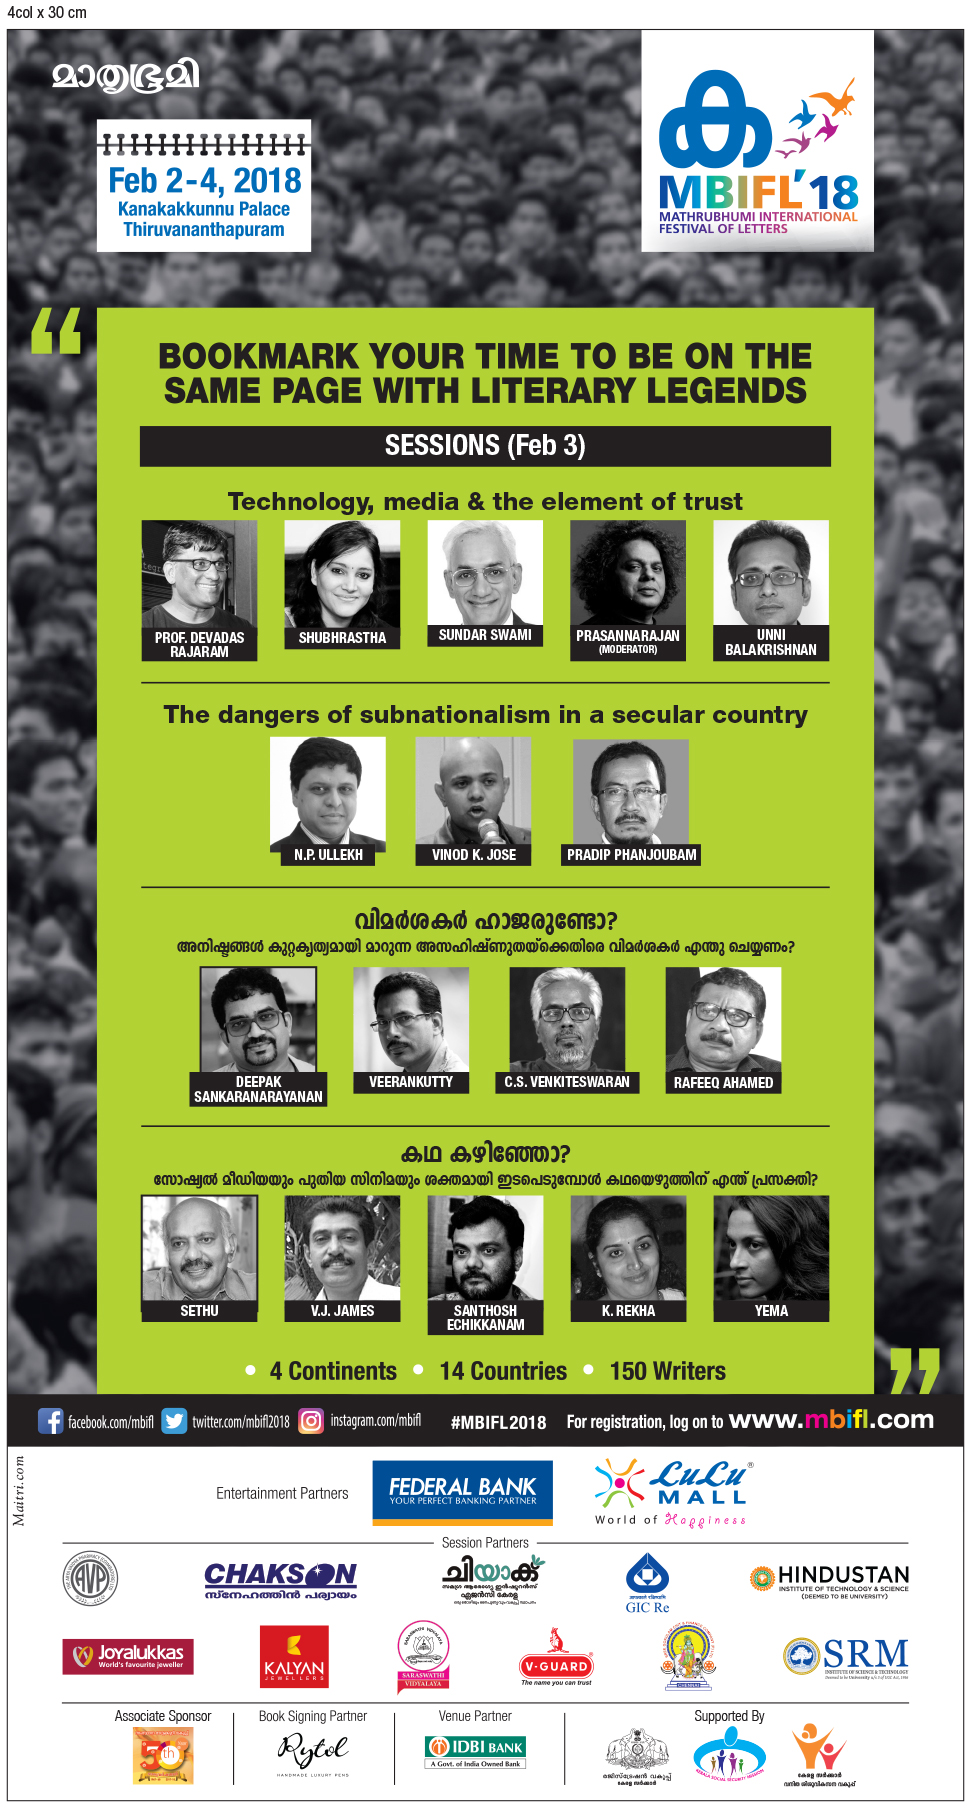 Mathrubhumi Festival of Letters 2018: Brand awareness campaign for the largest literature festival in God's own country